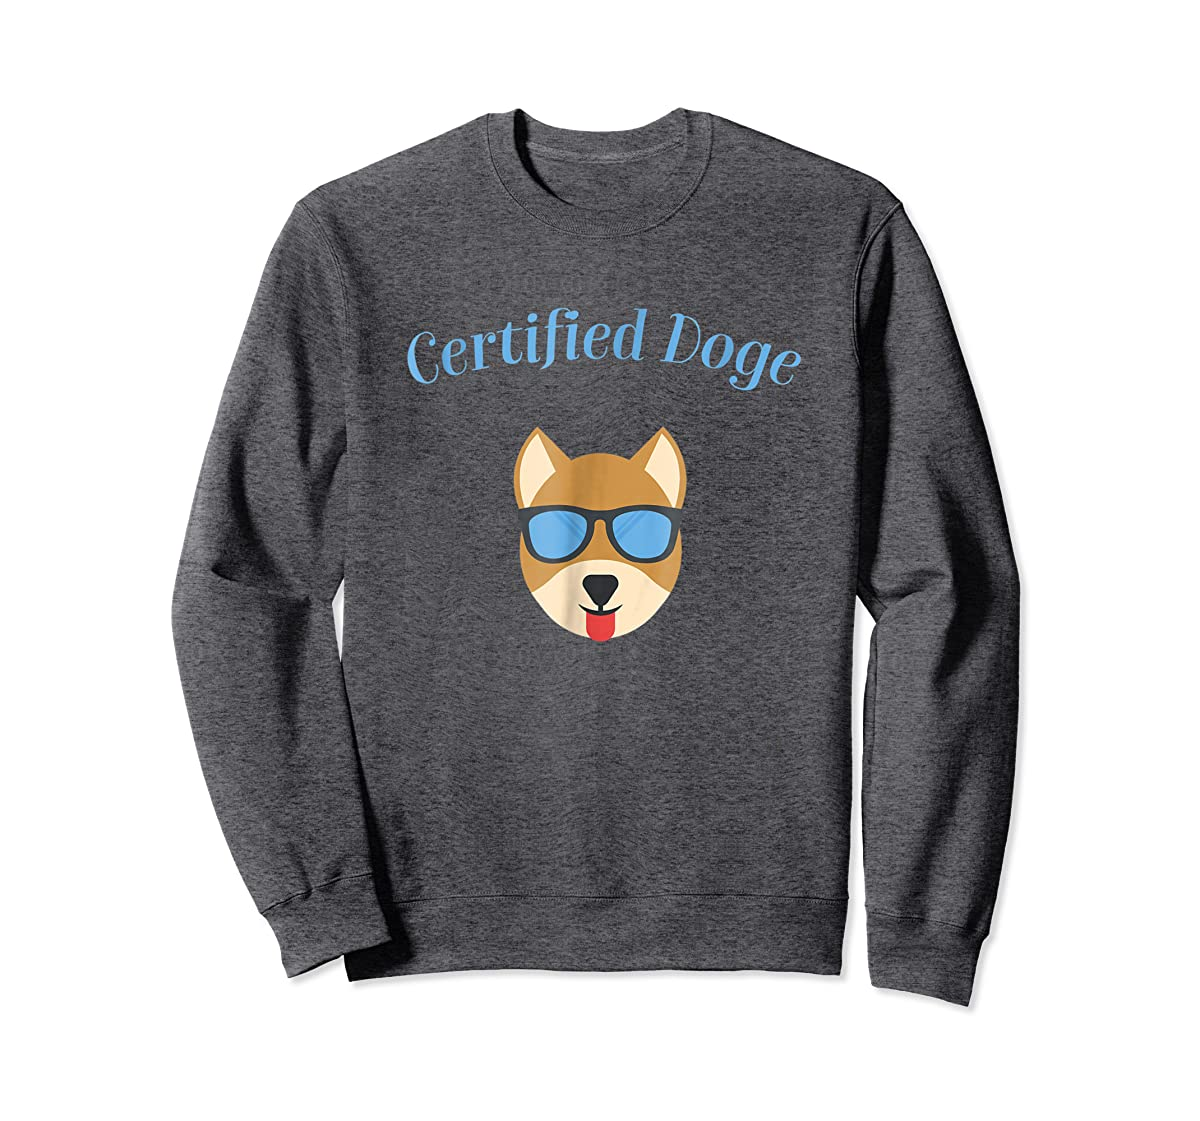 Certified Doge Tee Shirt for puppy Dog love and Fur Babies-Sweatshirt-Dark Heather